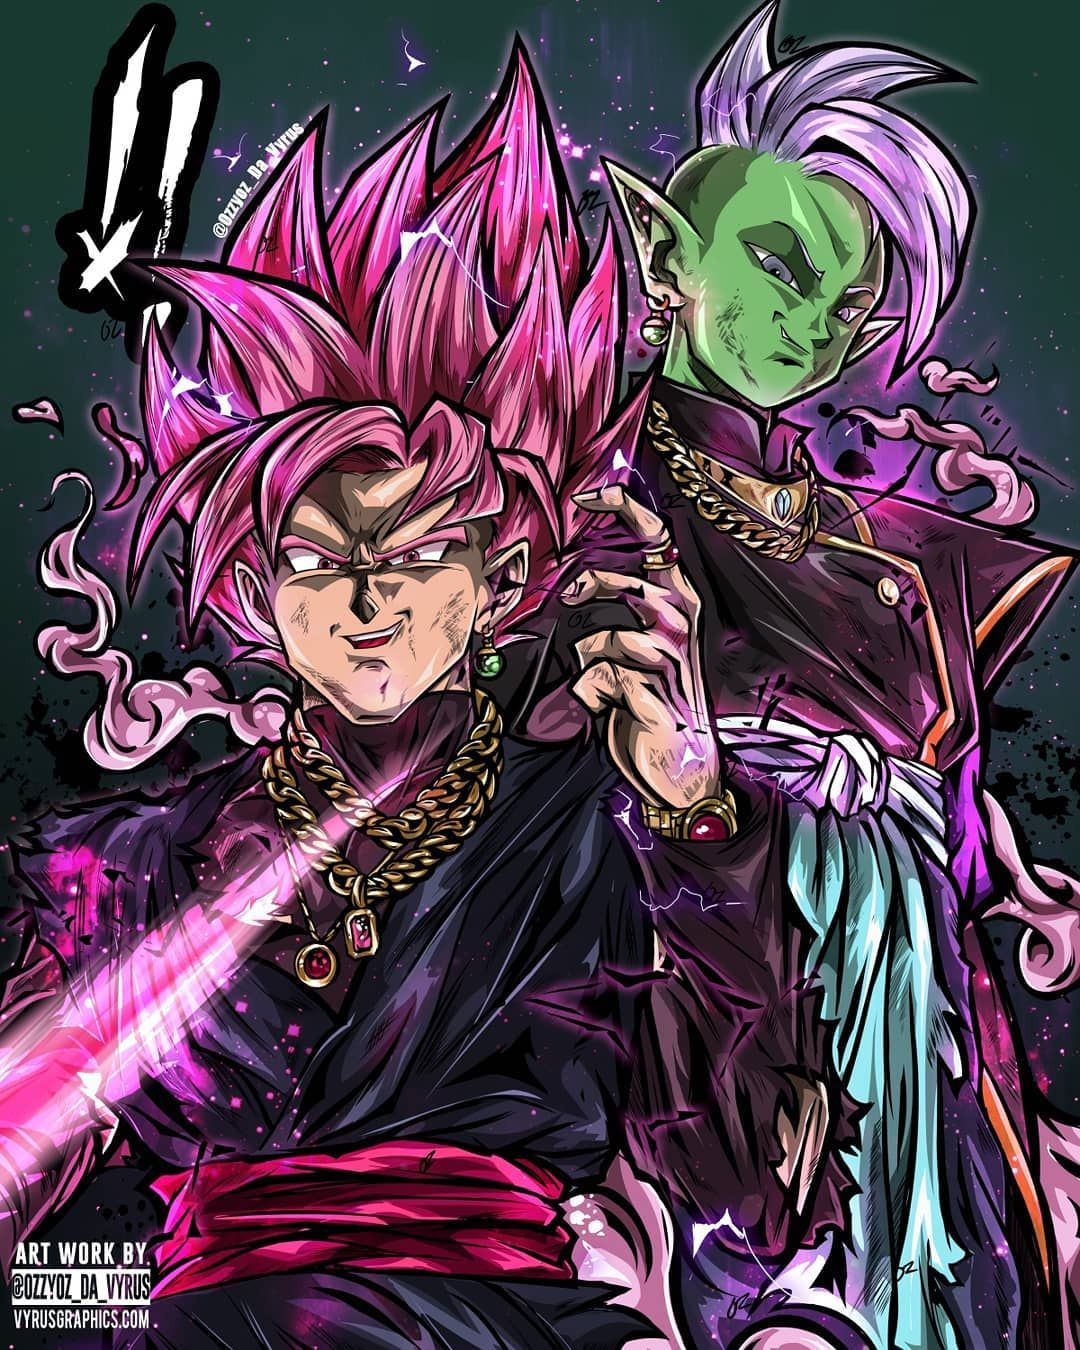 Og Blvck Tag A Goku Black Fan All Over Shirt Version Is Available Only In Black Www Vy Dibujos De Goku Black Personajes De Goku Personajes De Dragon Ball